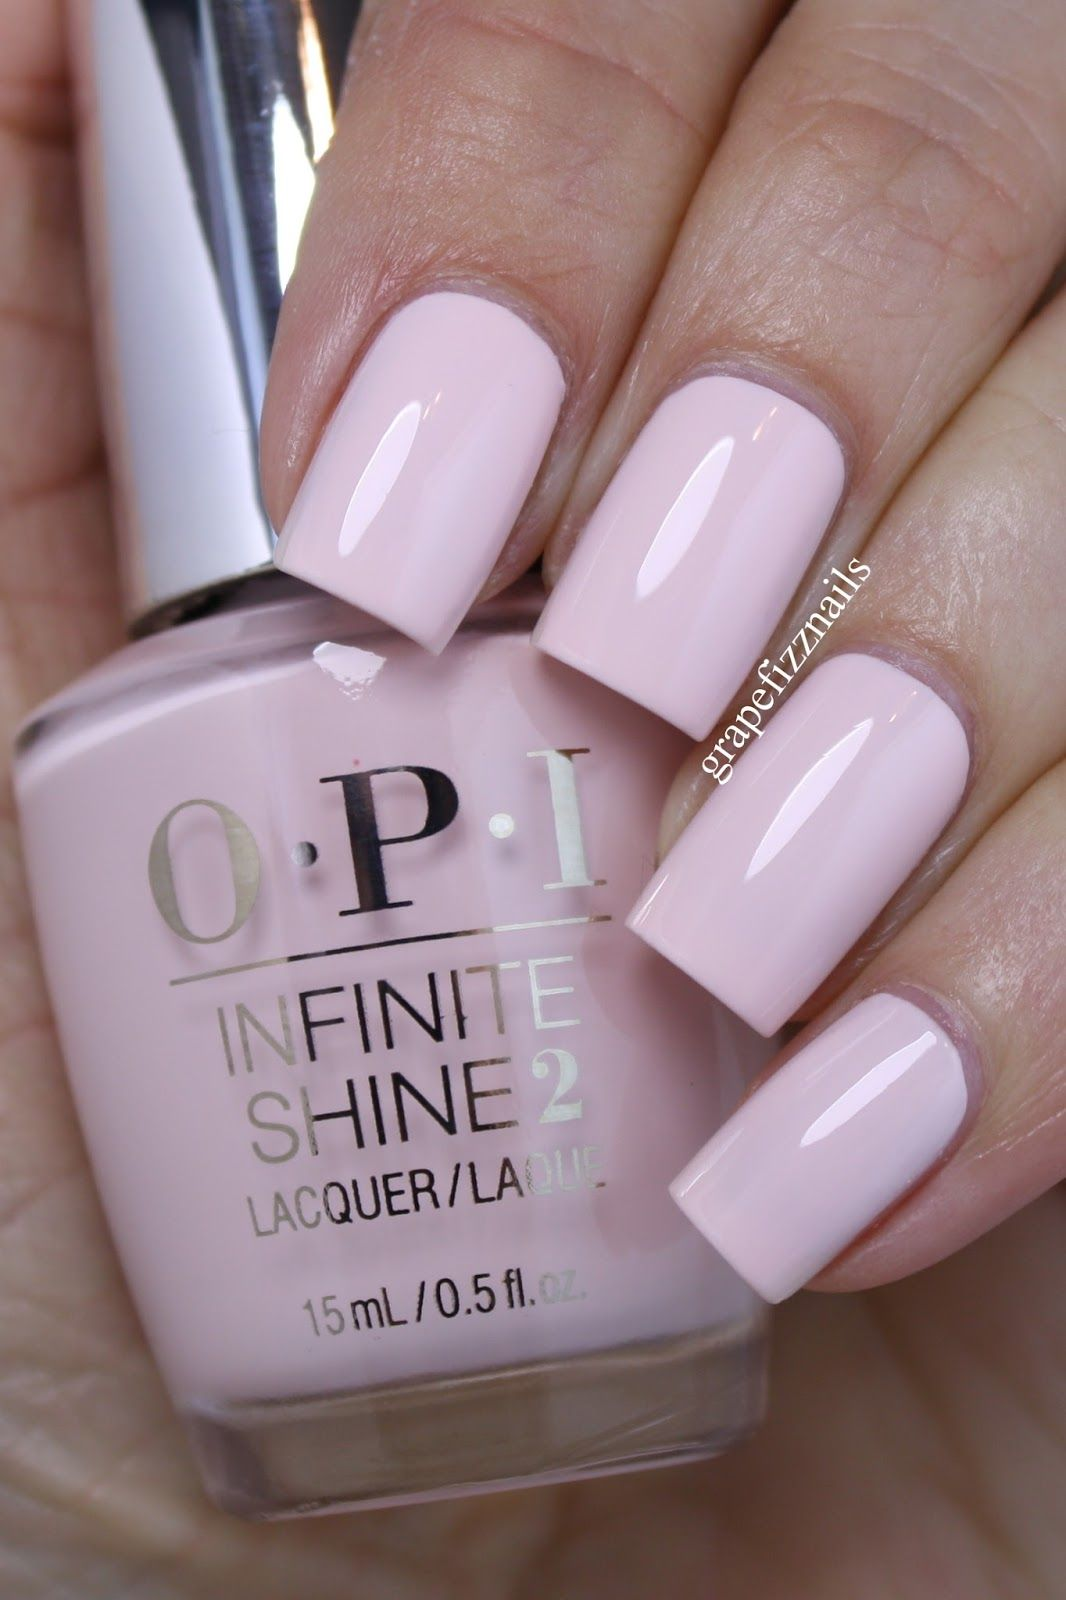 New Opi Spring 2016 Collection With Images Nail Colors Opi Nail Colors Nail Polish Colors